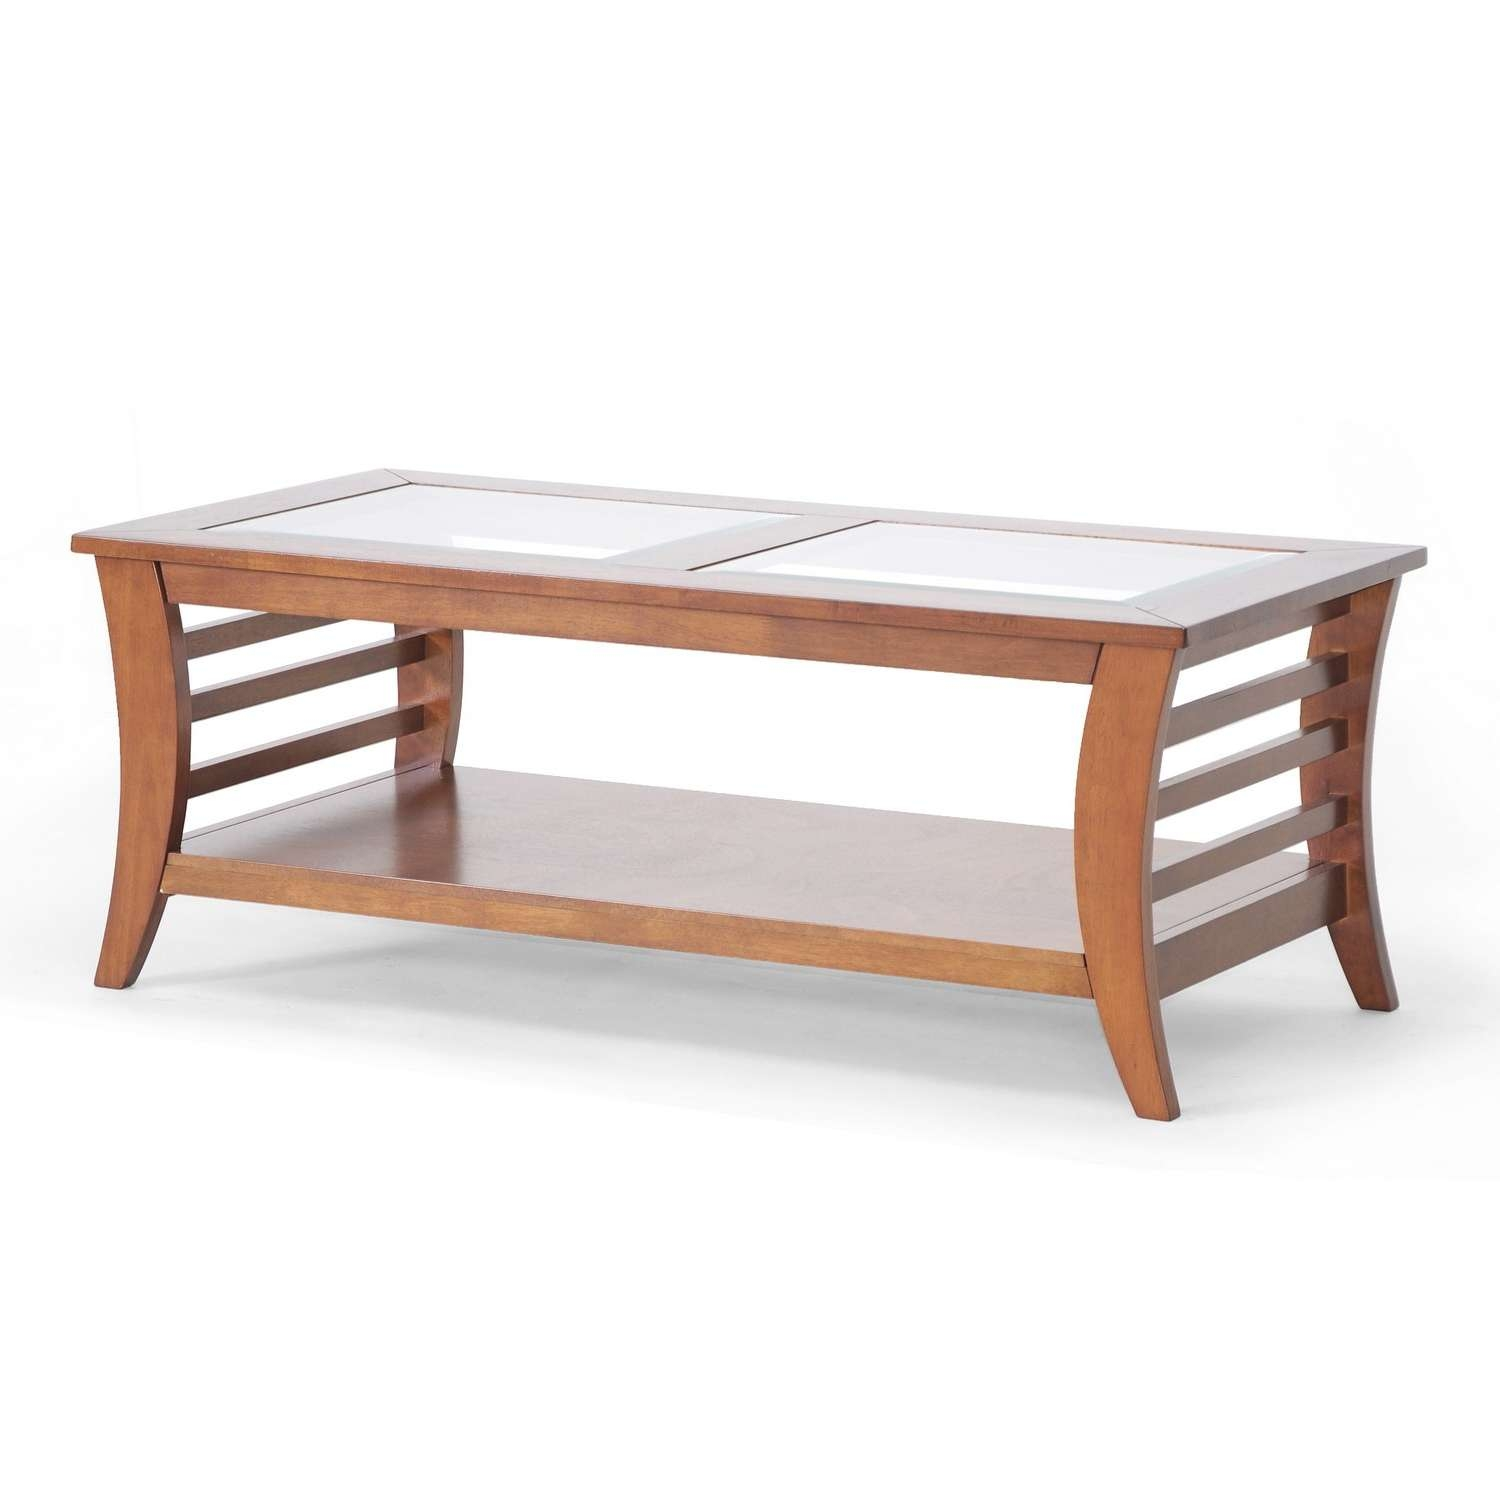 Most Popular Dark Wood Coffee Tables With Glass Top Regarding Coffee Tables : Top Of Black Oval Coffee Tables Small Glass (View 23 of 23)